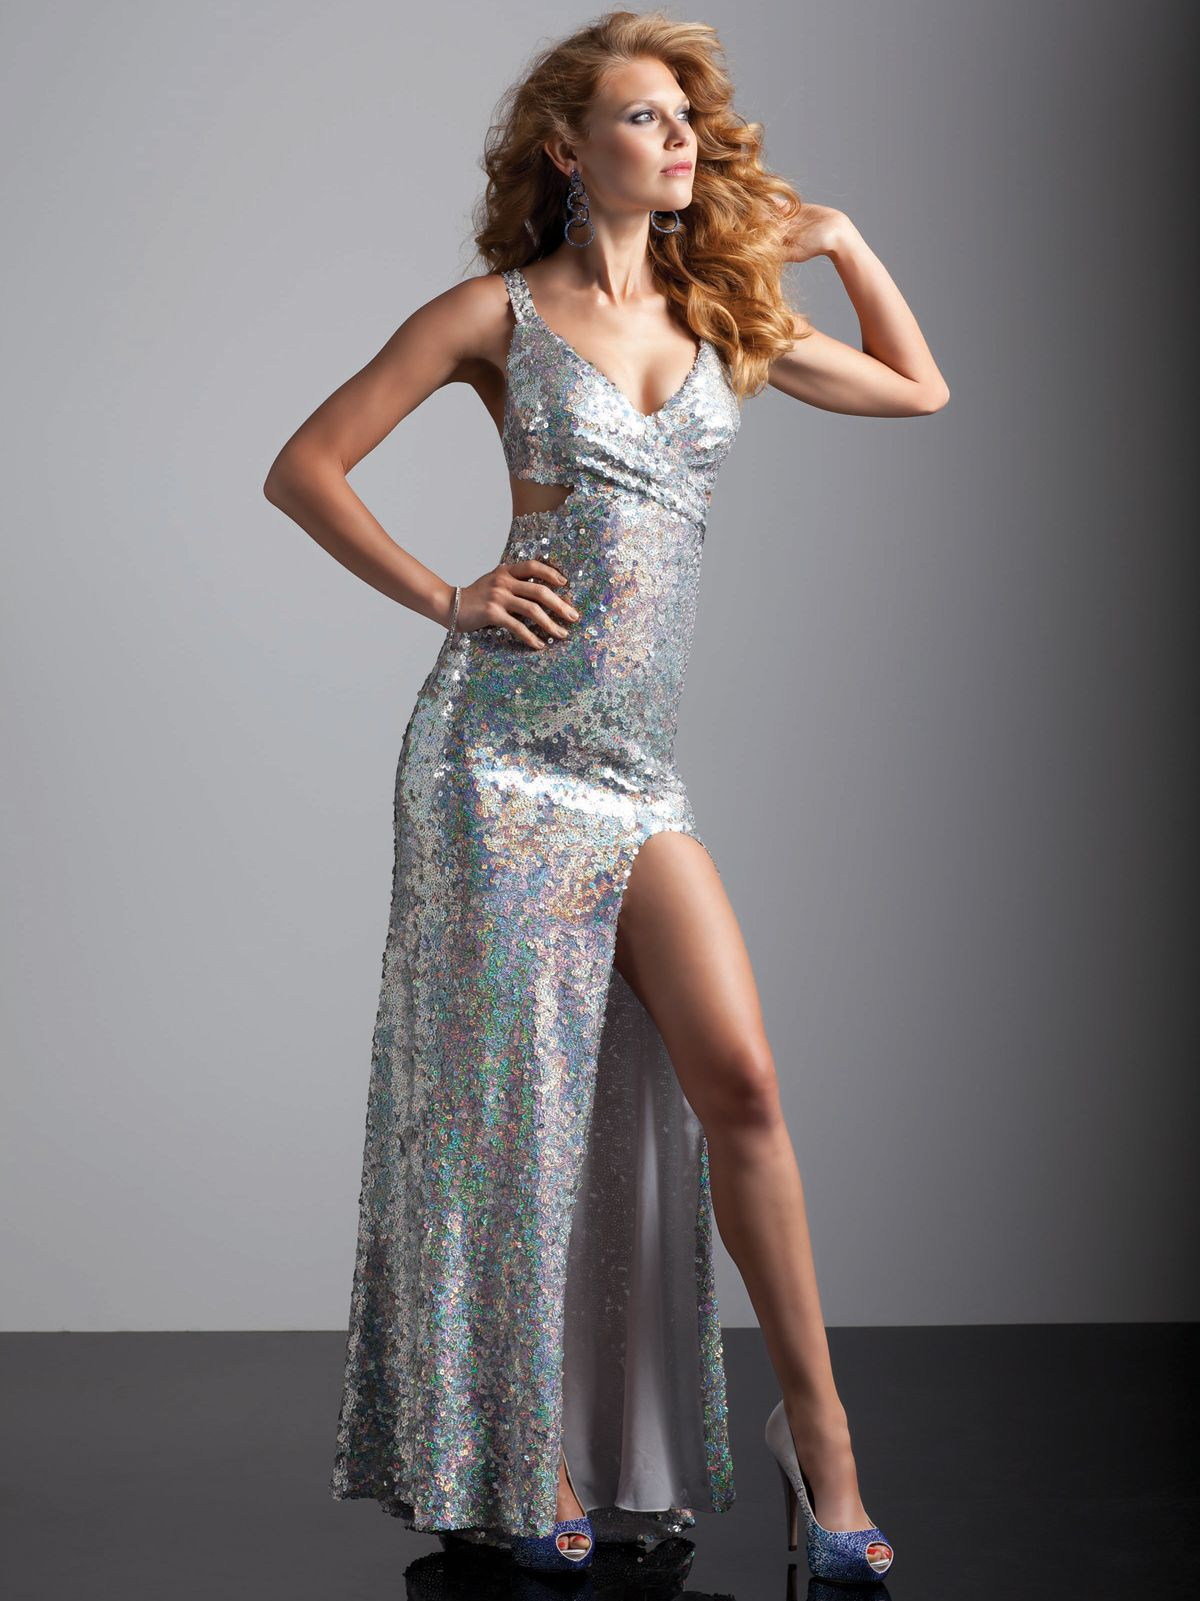 Sparkly prom dress that will make you shine on your prom night this